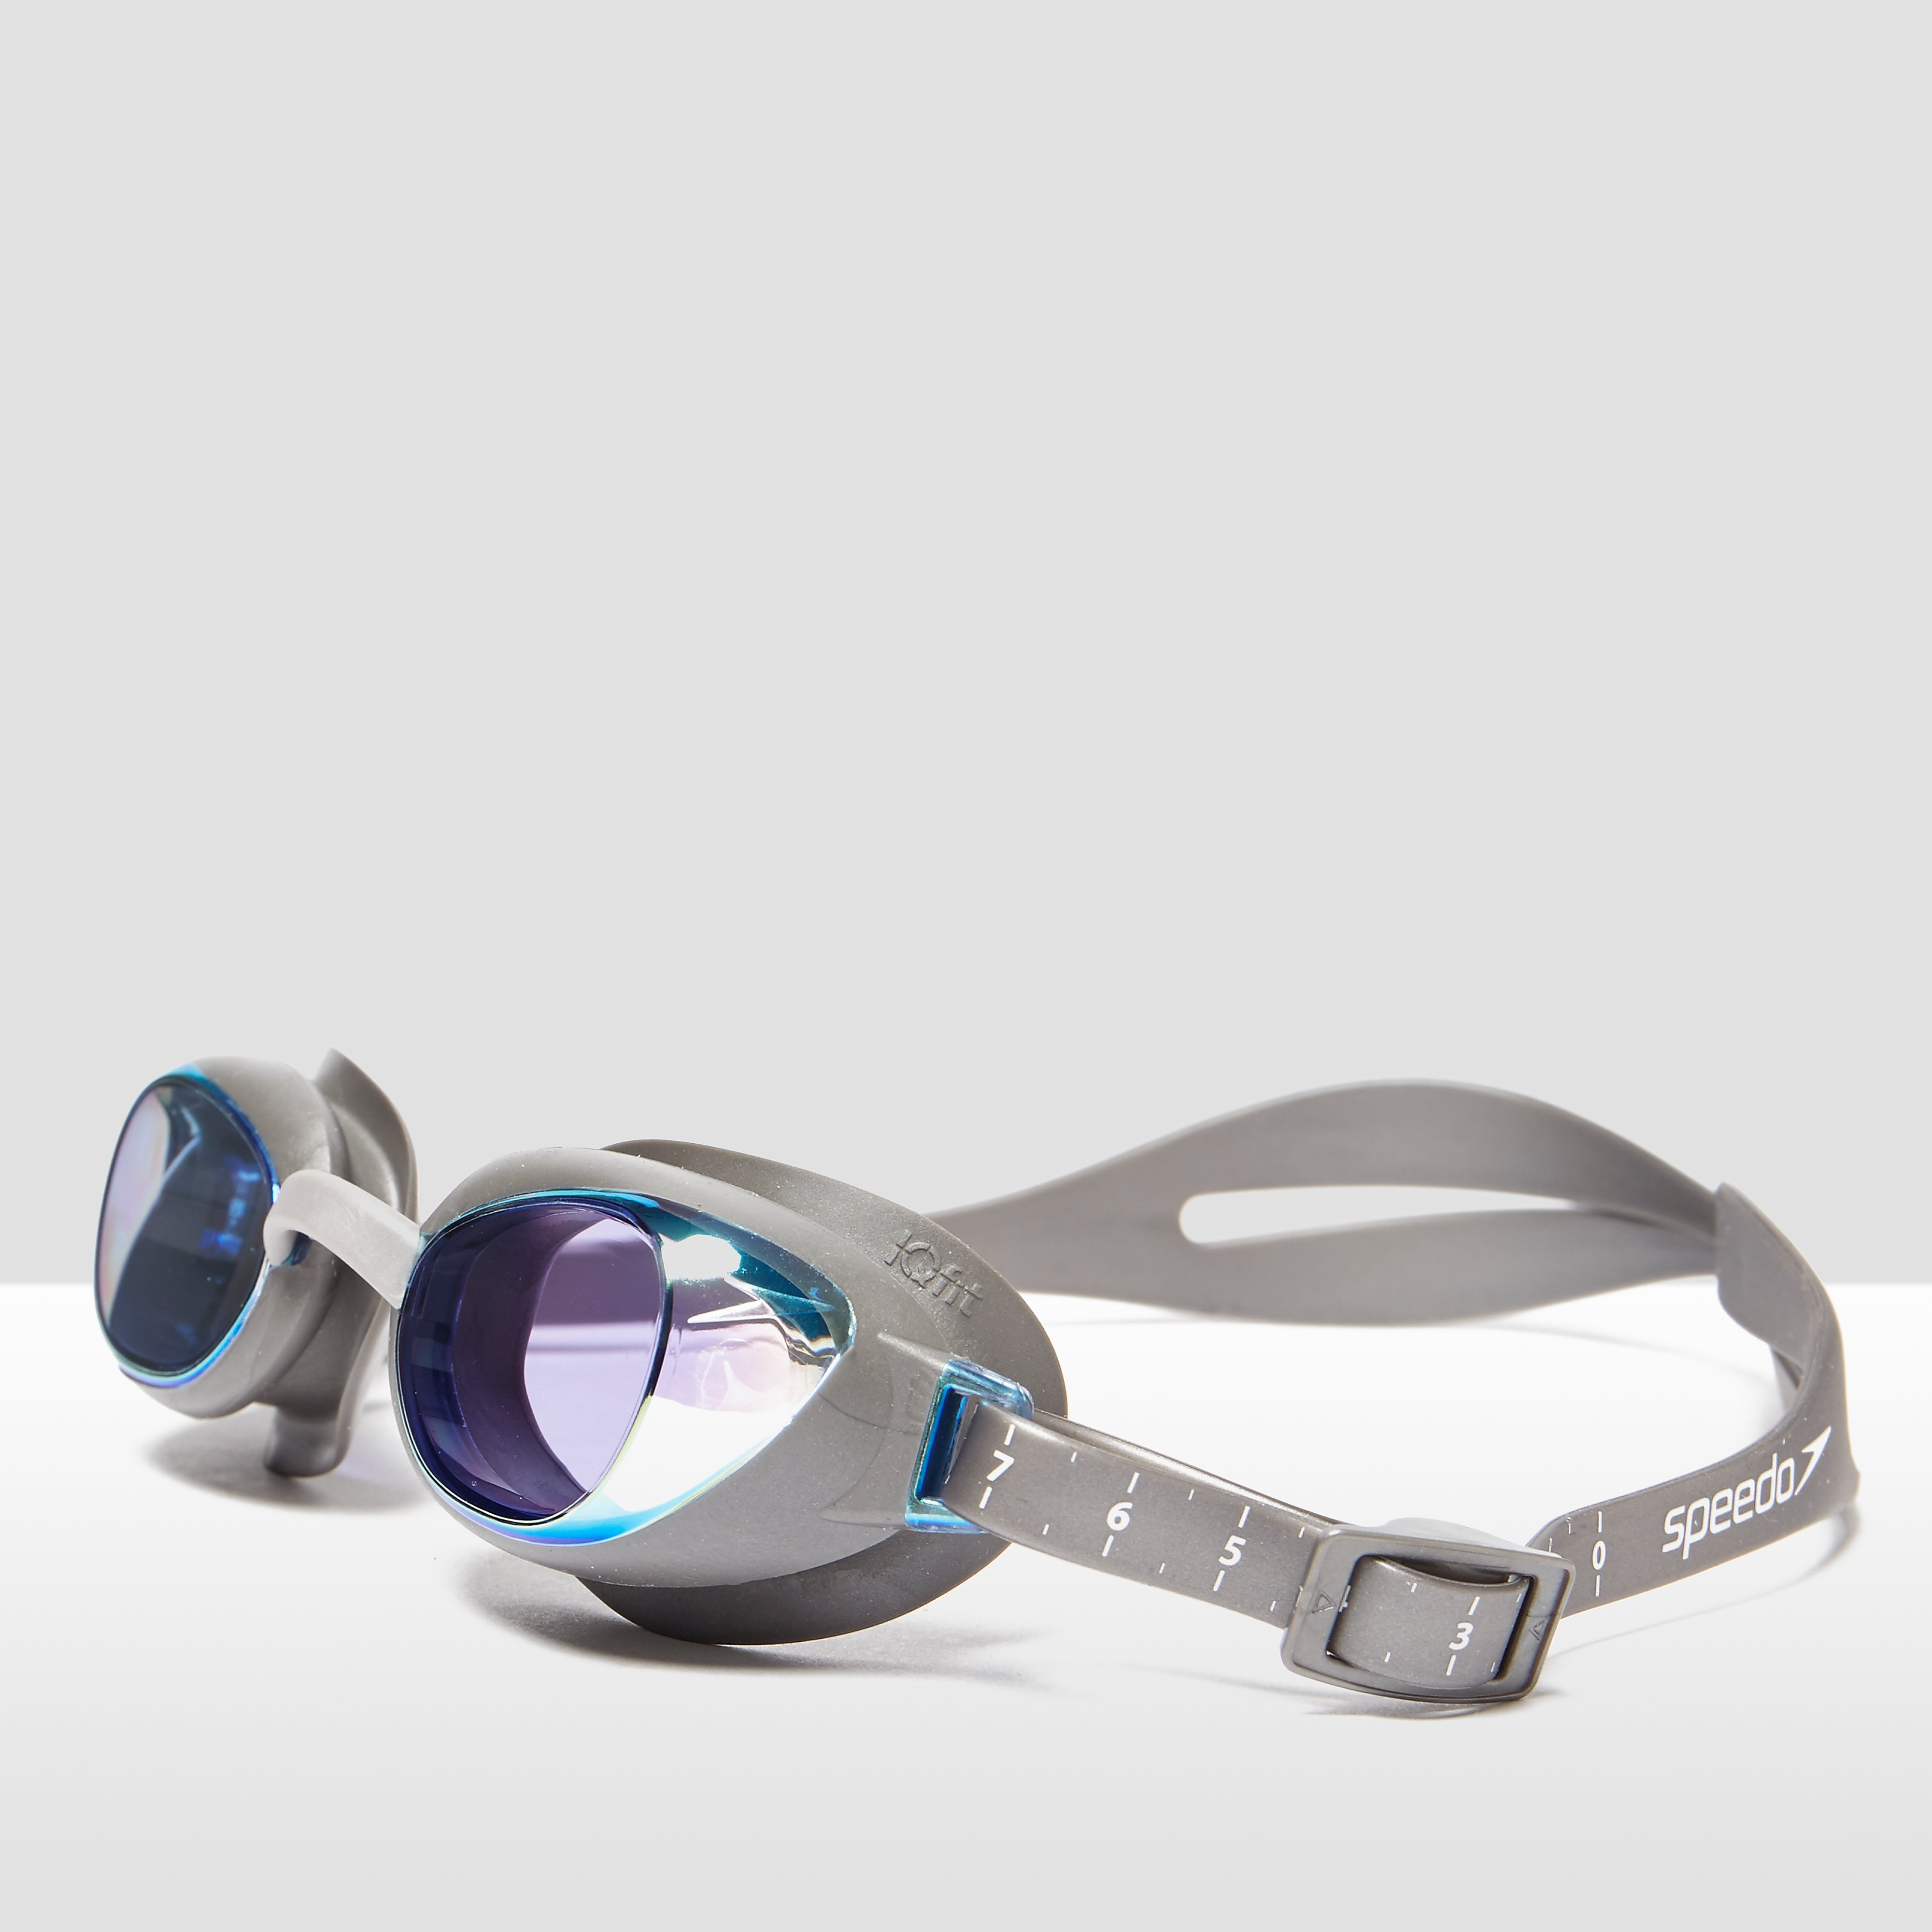 Speedo Aquapure Mirror Swimming Goggles